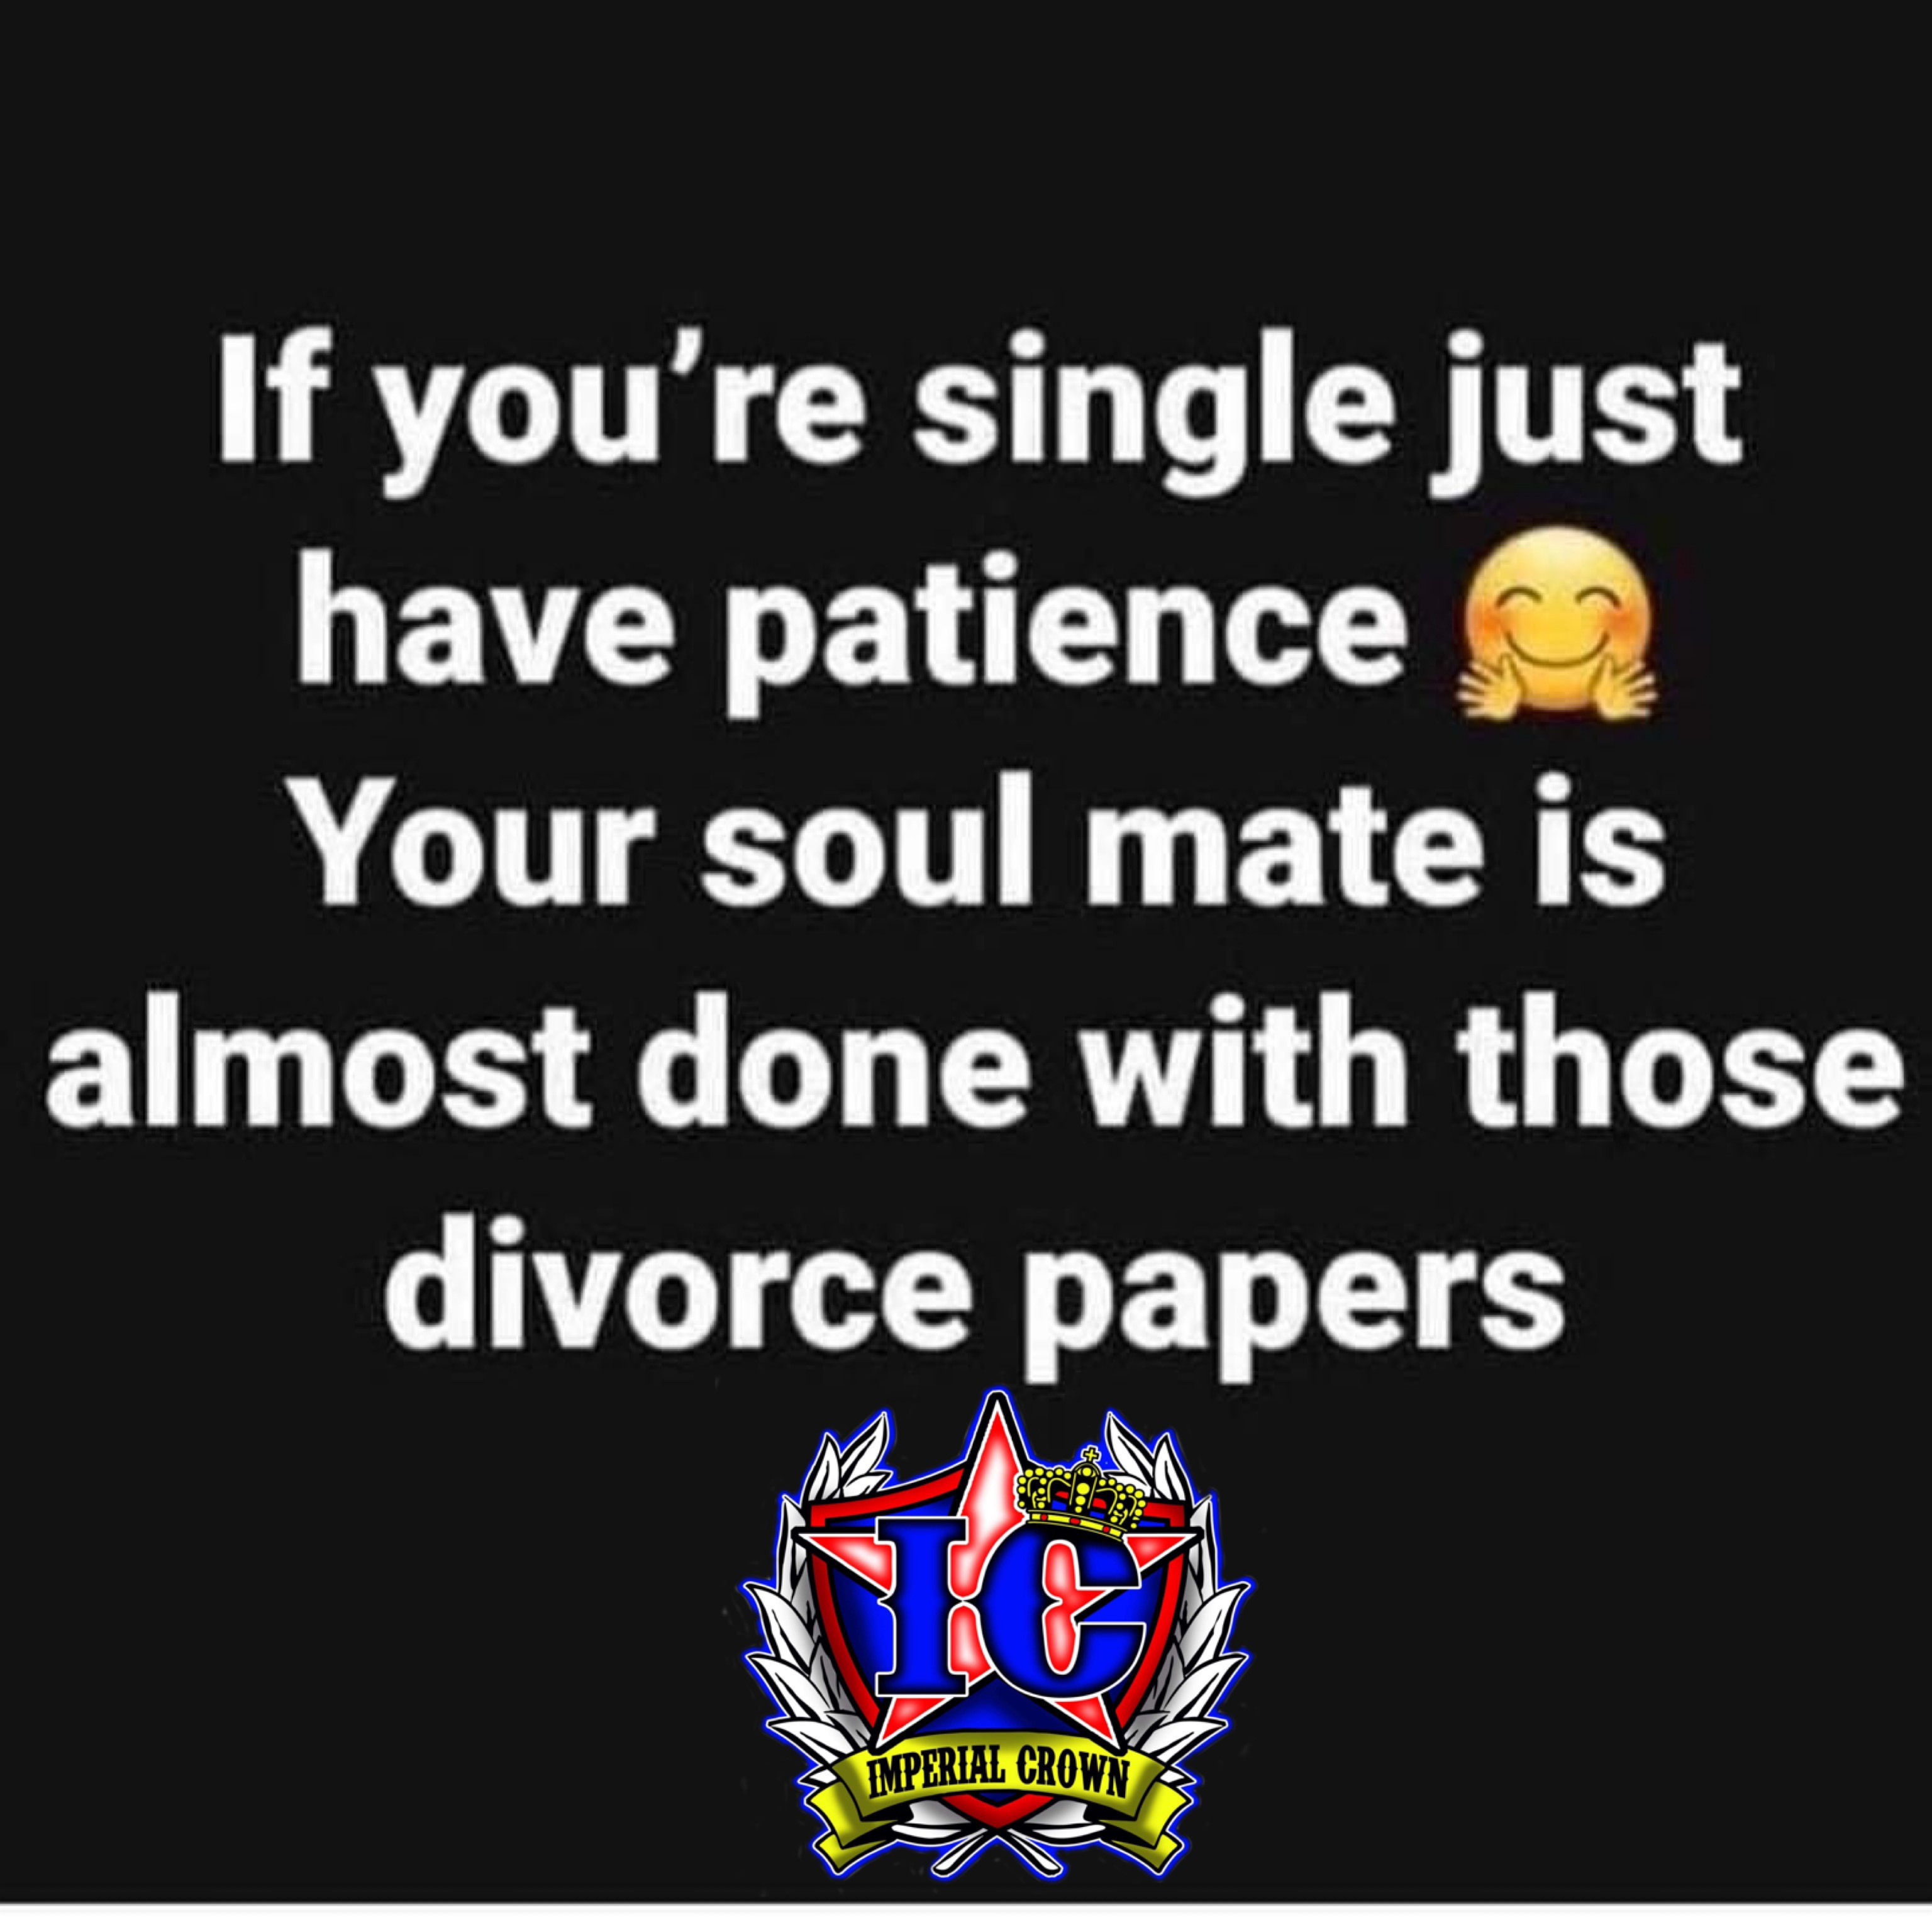 If you're single just have patience your soulmate is almost done with those divorce papers